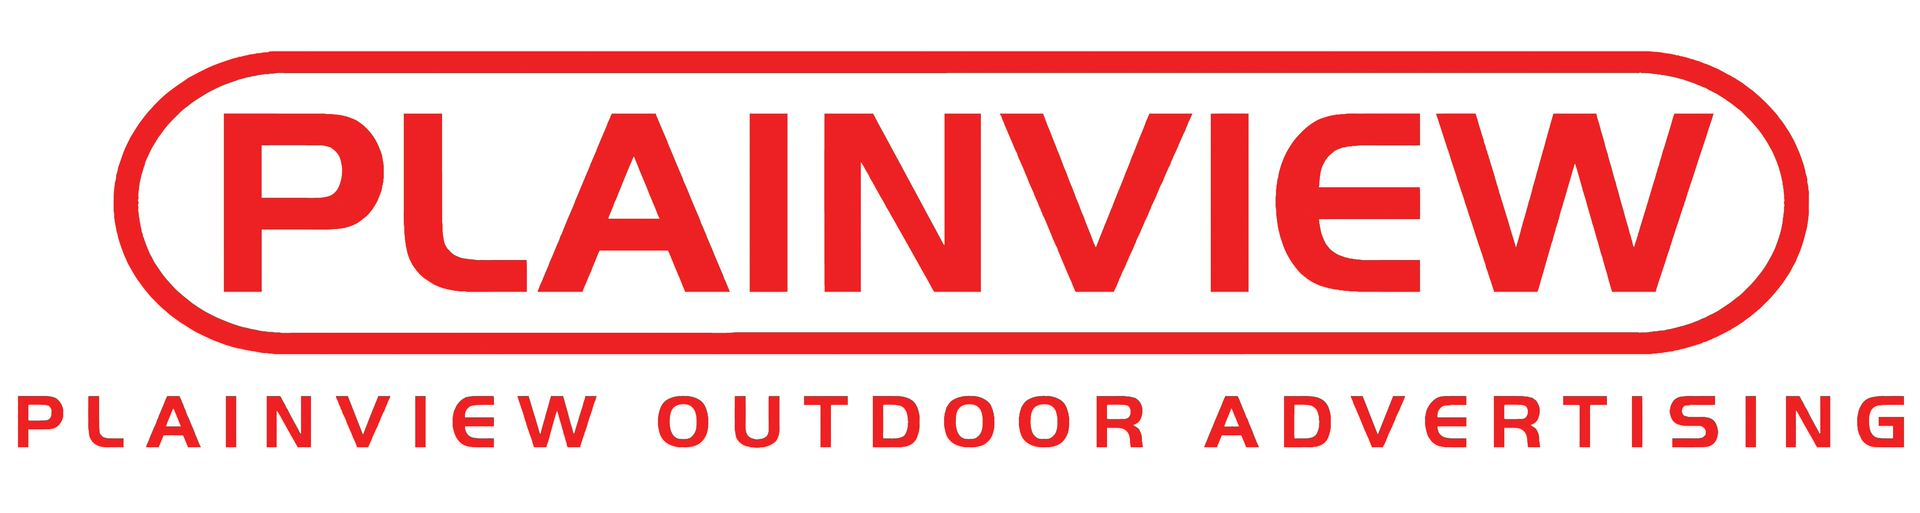 Plainview Outdoor Advertising